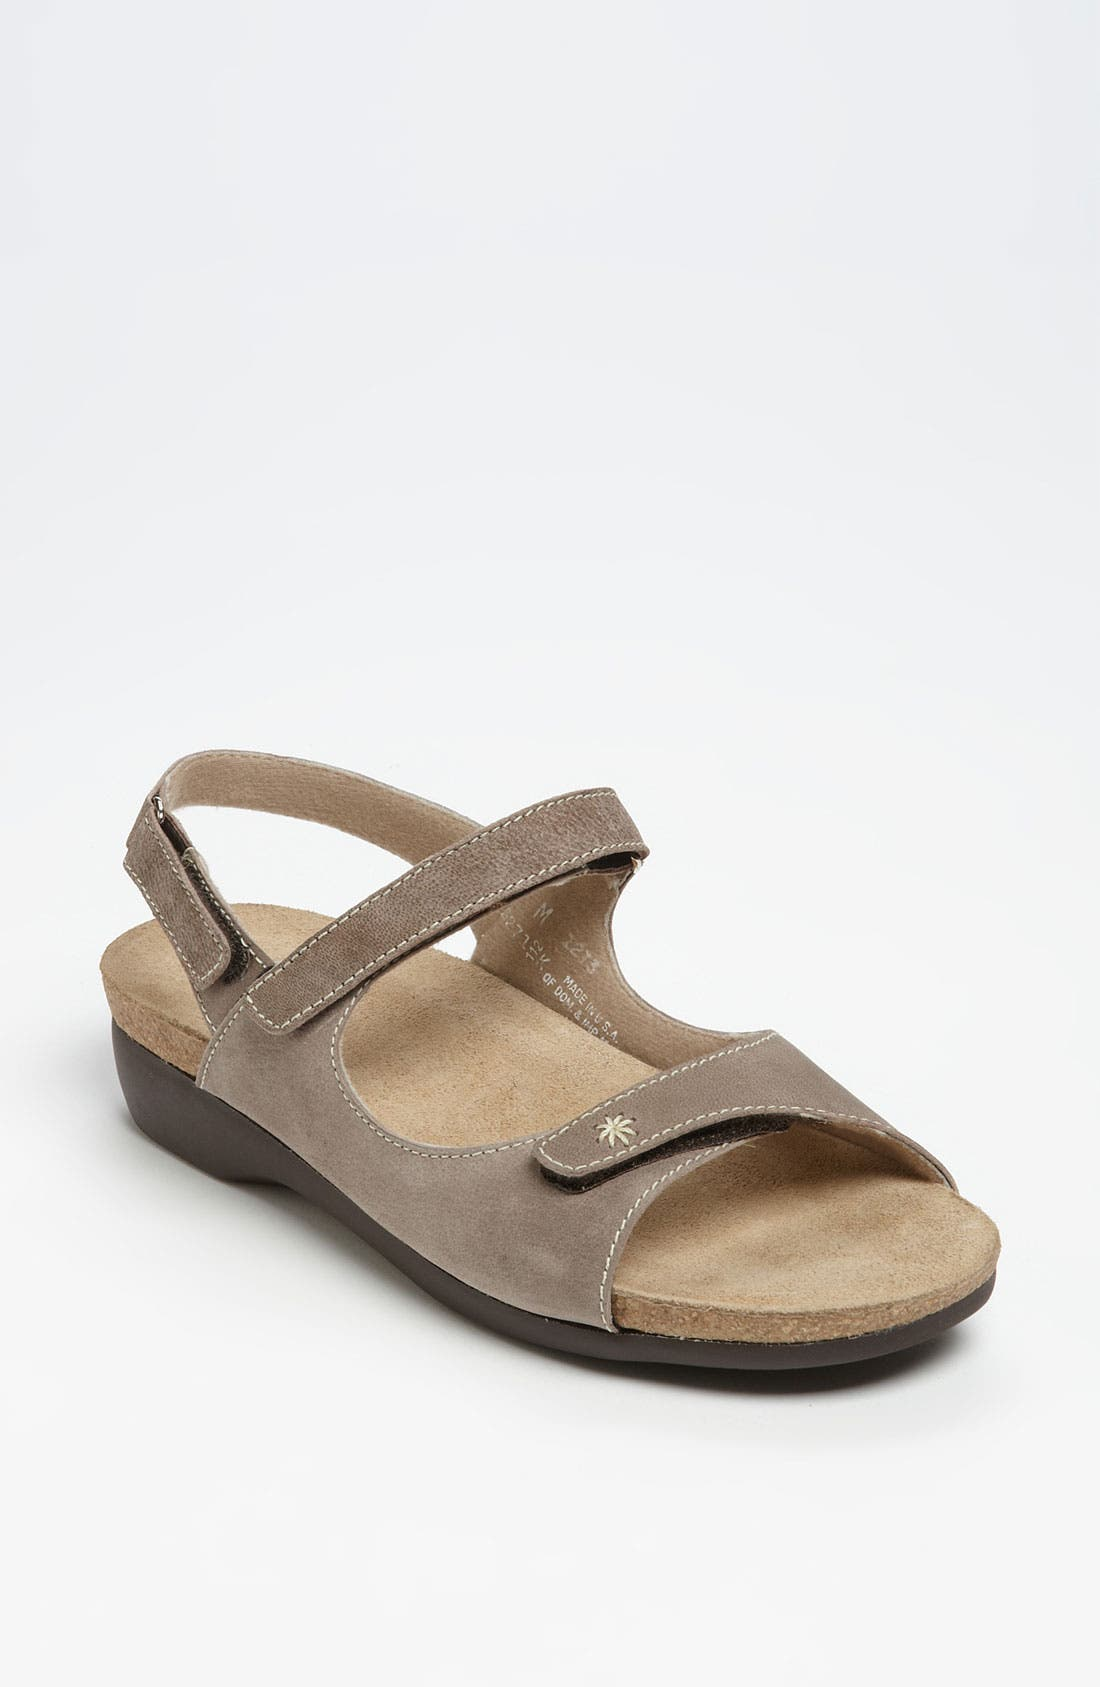 Alternate Image 1 Selected - Munro 'Gemini' Sandal